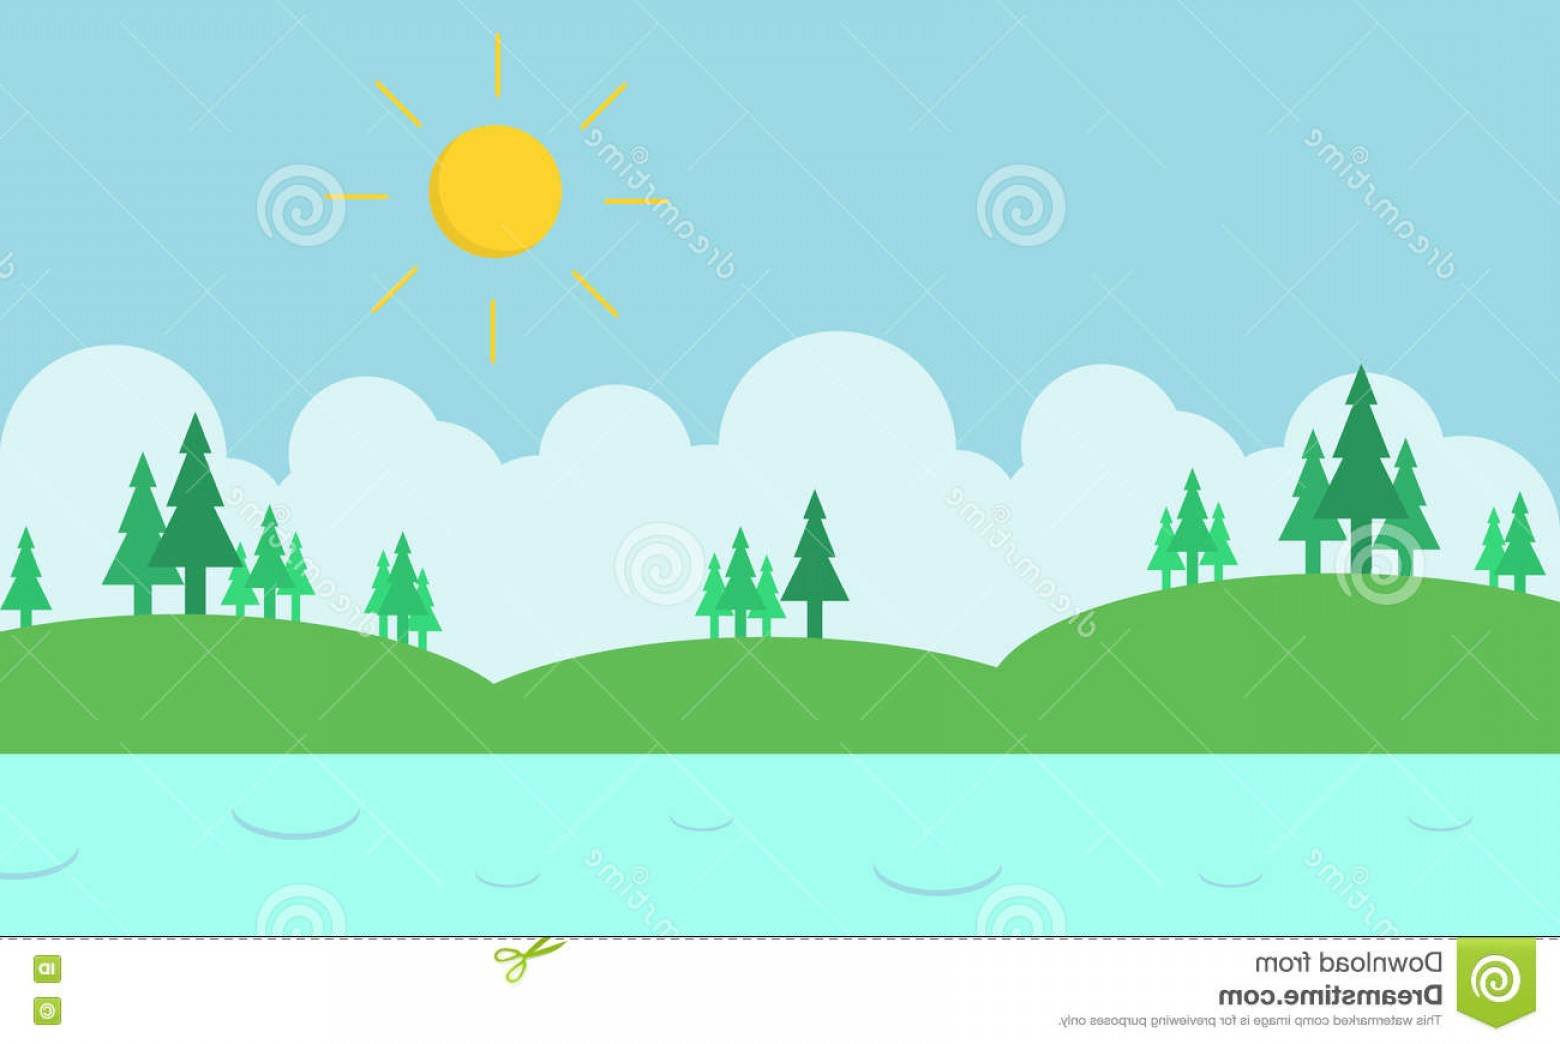 River Silhouette Vector Art: Stock Illustration Landscape Hill River Silhouette Vector Art Image